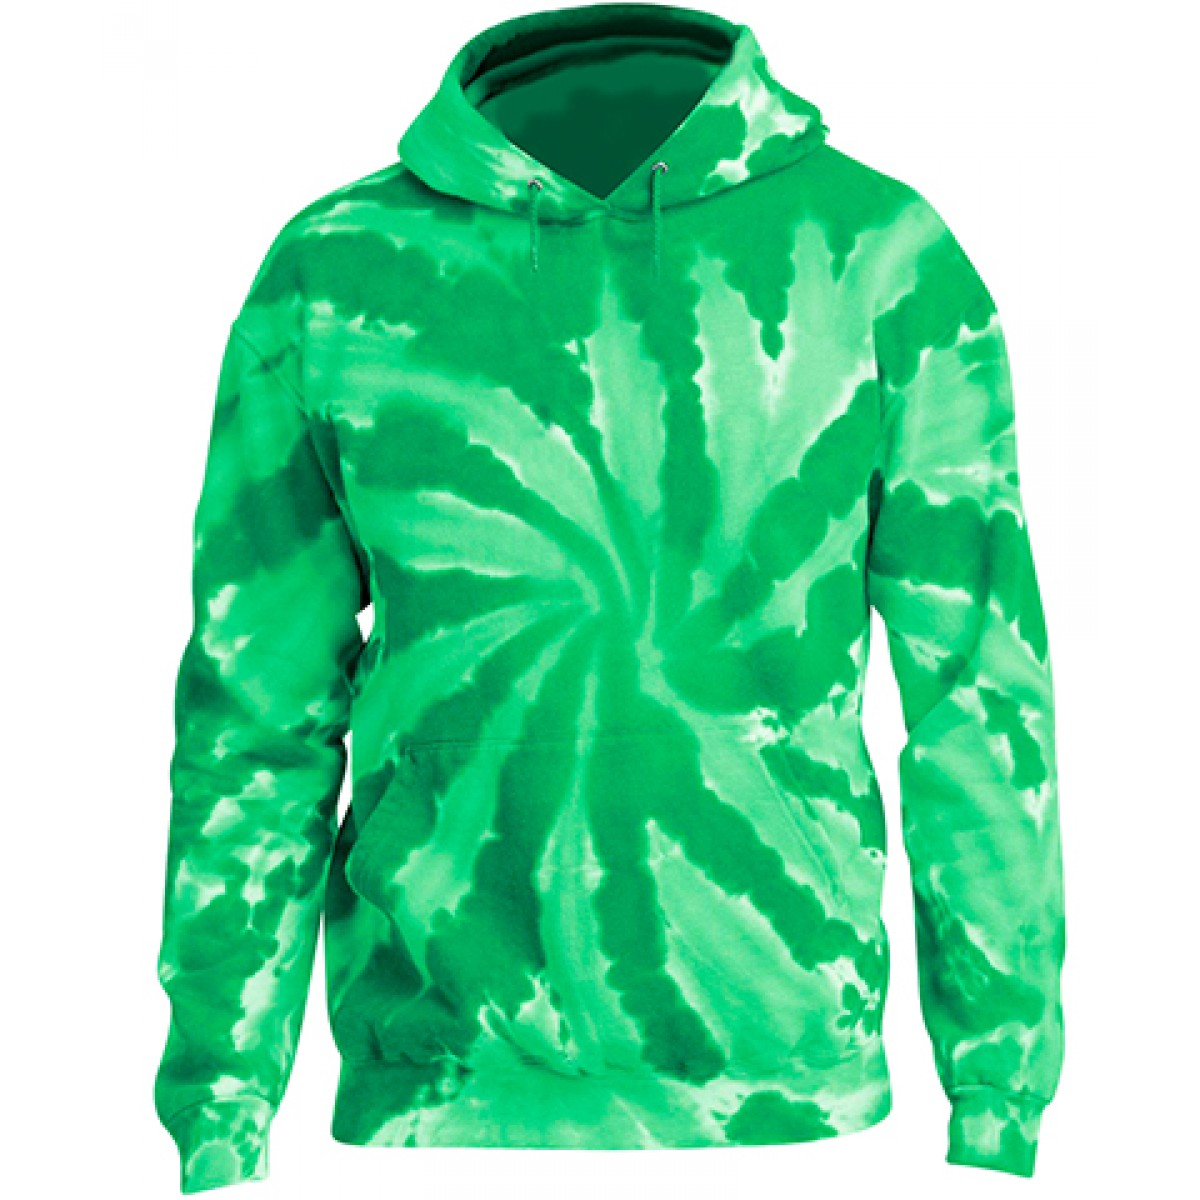 Tie-Dye Pullover Hooded Sweatshirt-Green-4XL